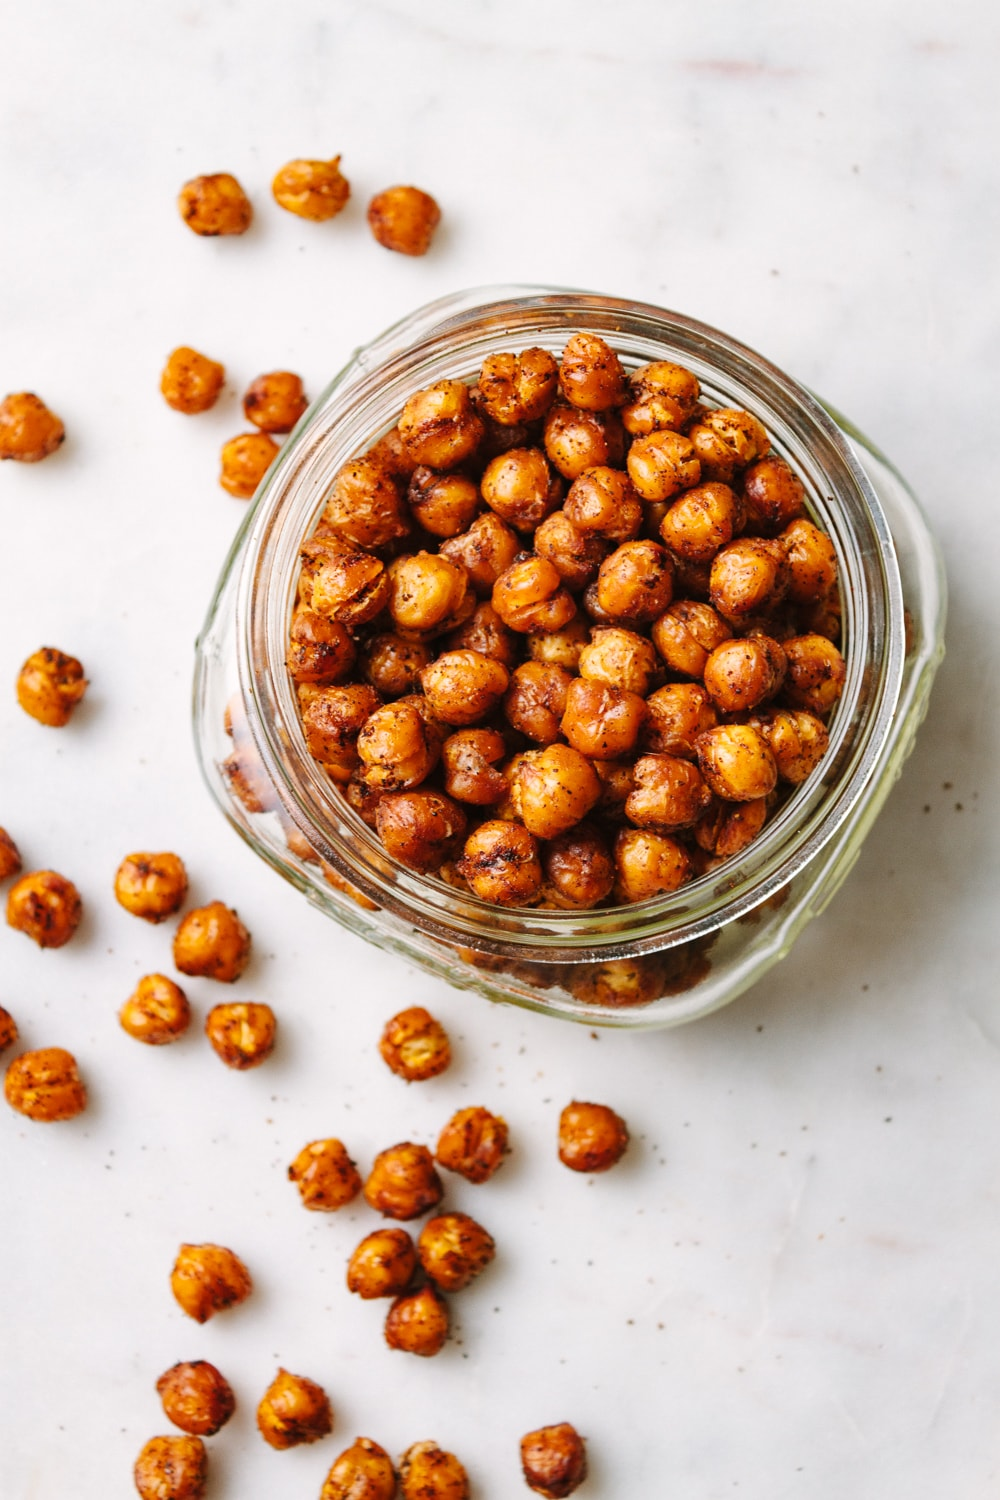 top down view of a glass jar filled with chipotle roasted chickpeas.